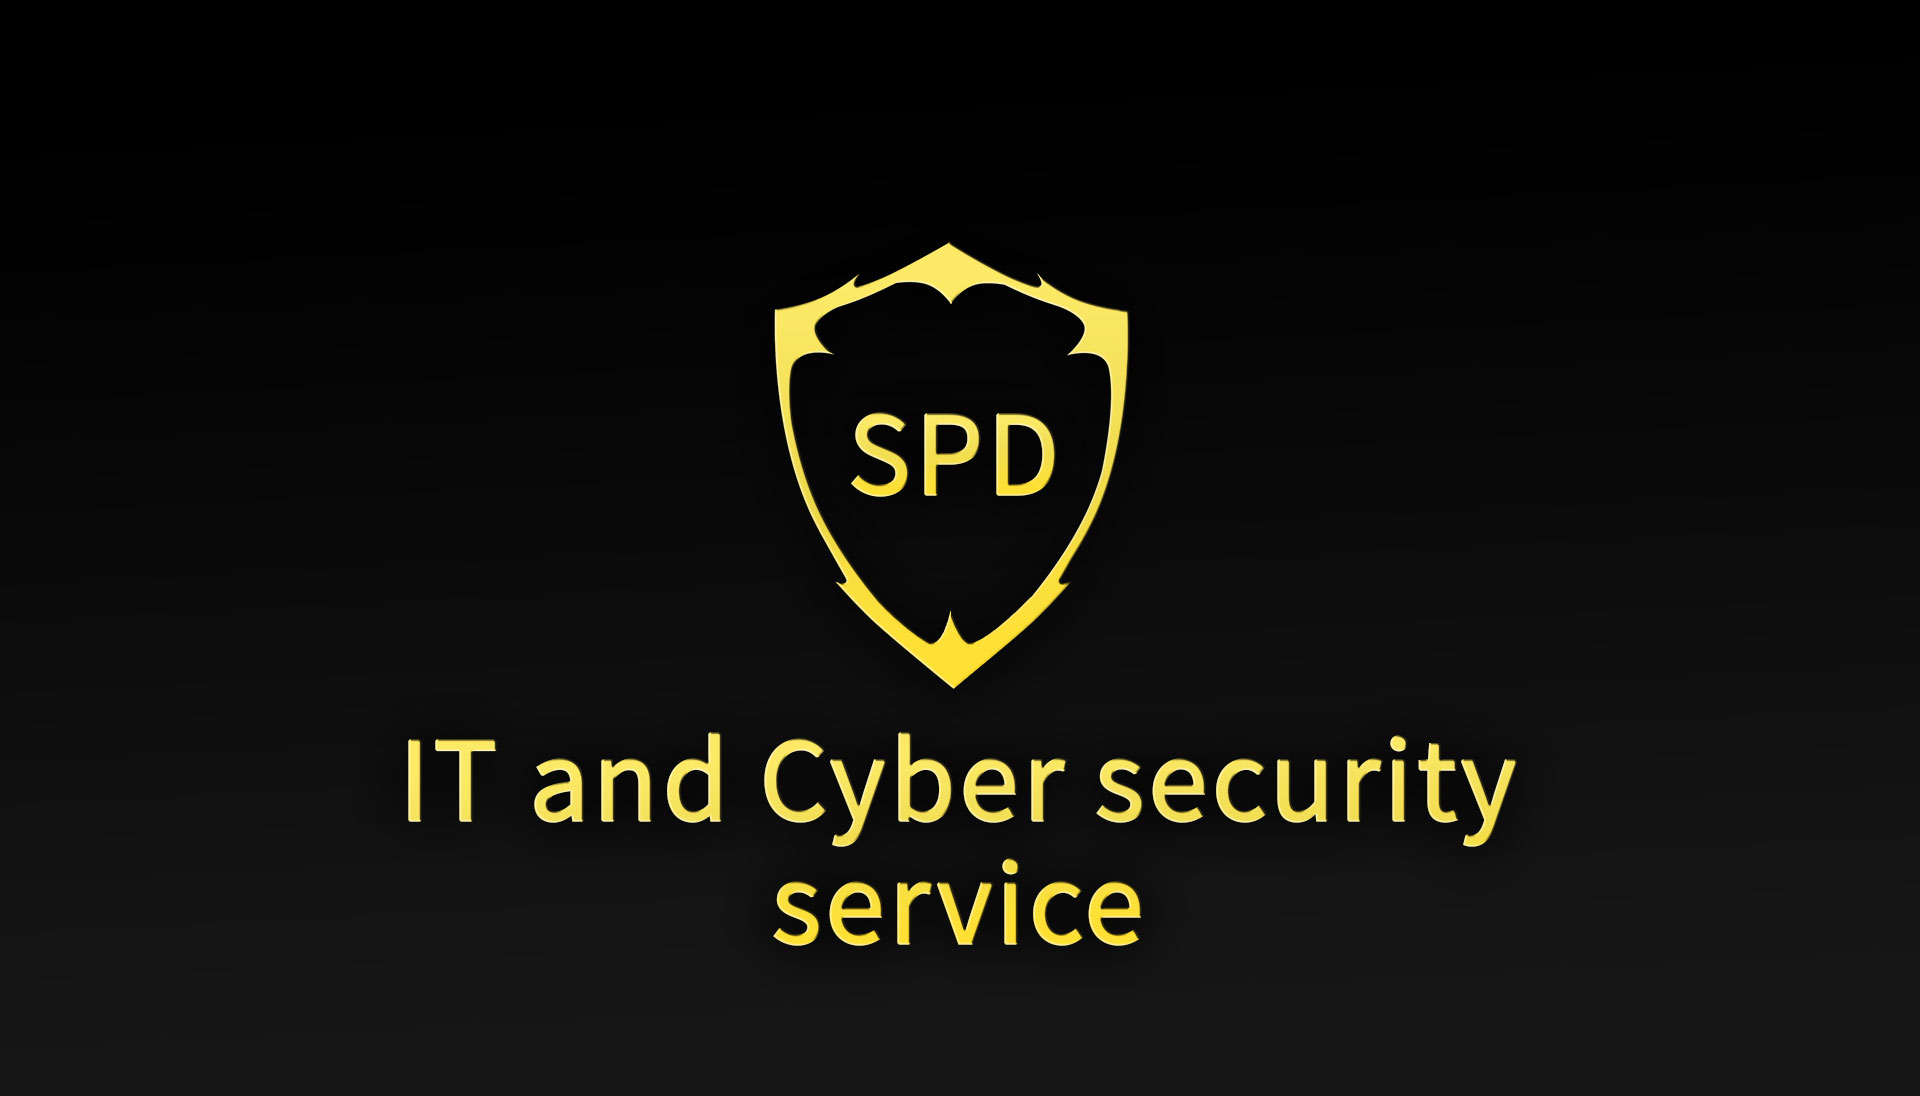 SPD.IO Cyber Security IT and Cyber security service